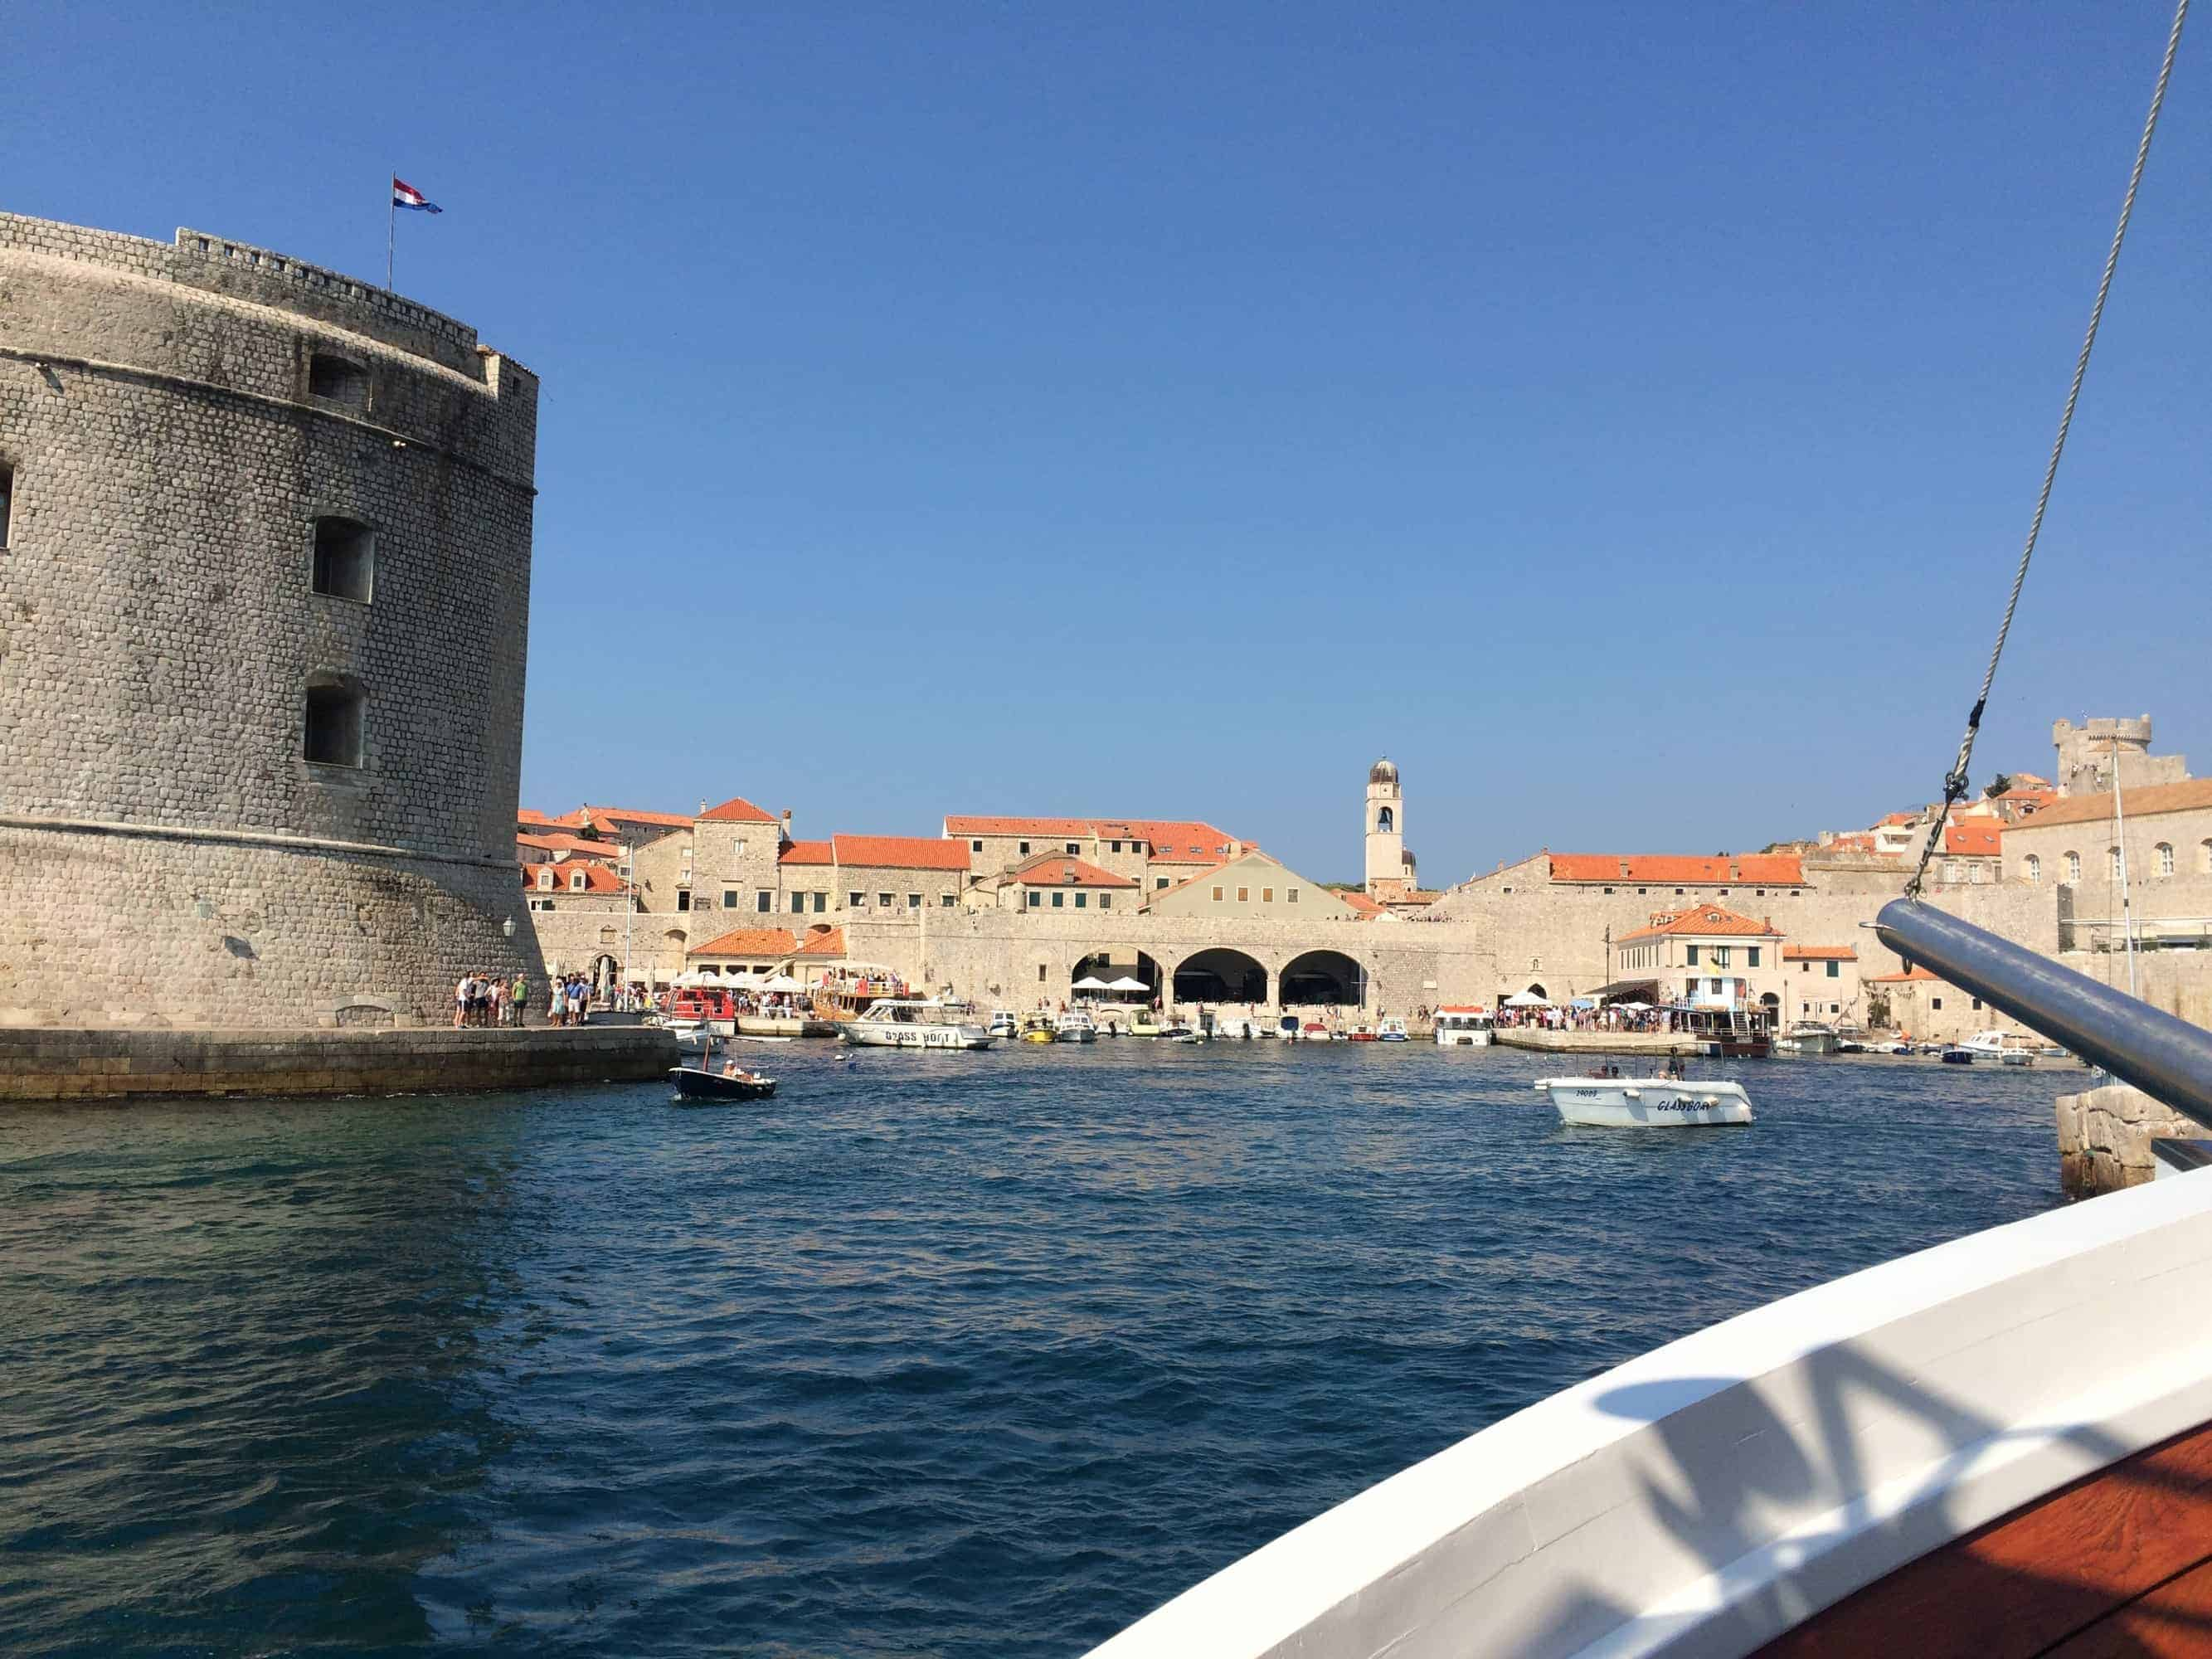 Discover dubrovnik old town guided walking tour - Old Town Harbour Dubrovnik